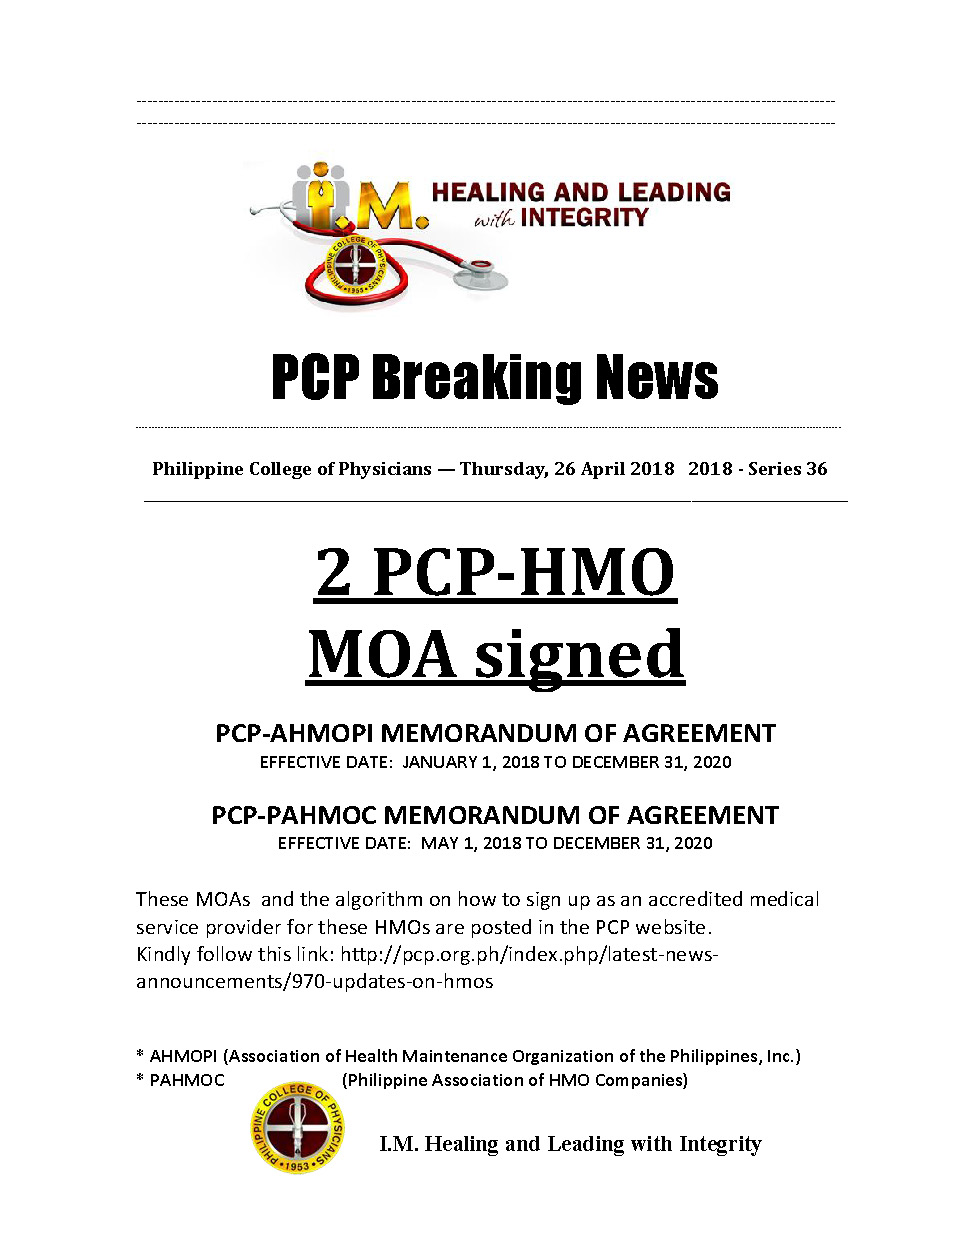 36th PCP Breaking News PCP signed 2 MOA